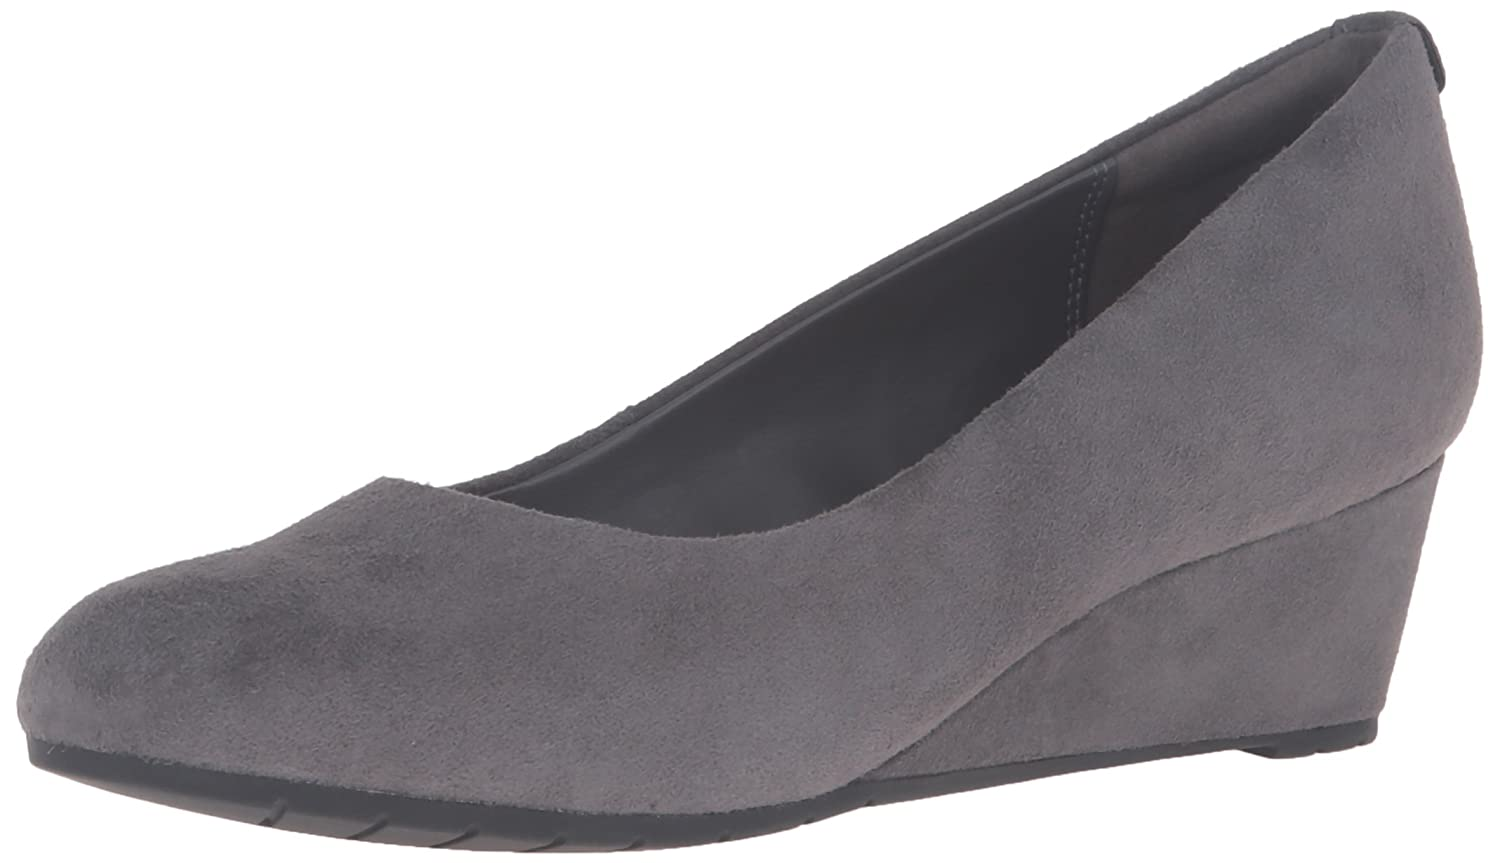 CLARKS Women's Vendra Bloom Wedge Pump B0195EDOZY 5.5 B(M) US|Grey Suede